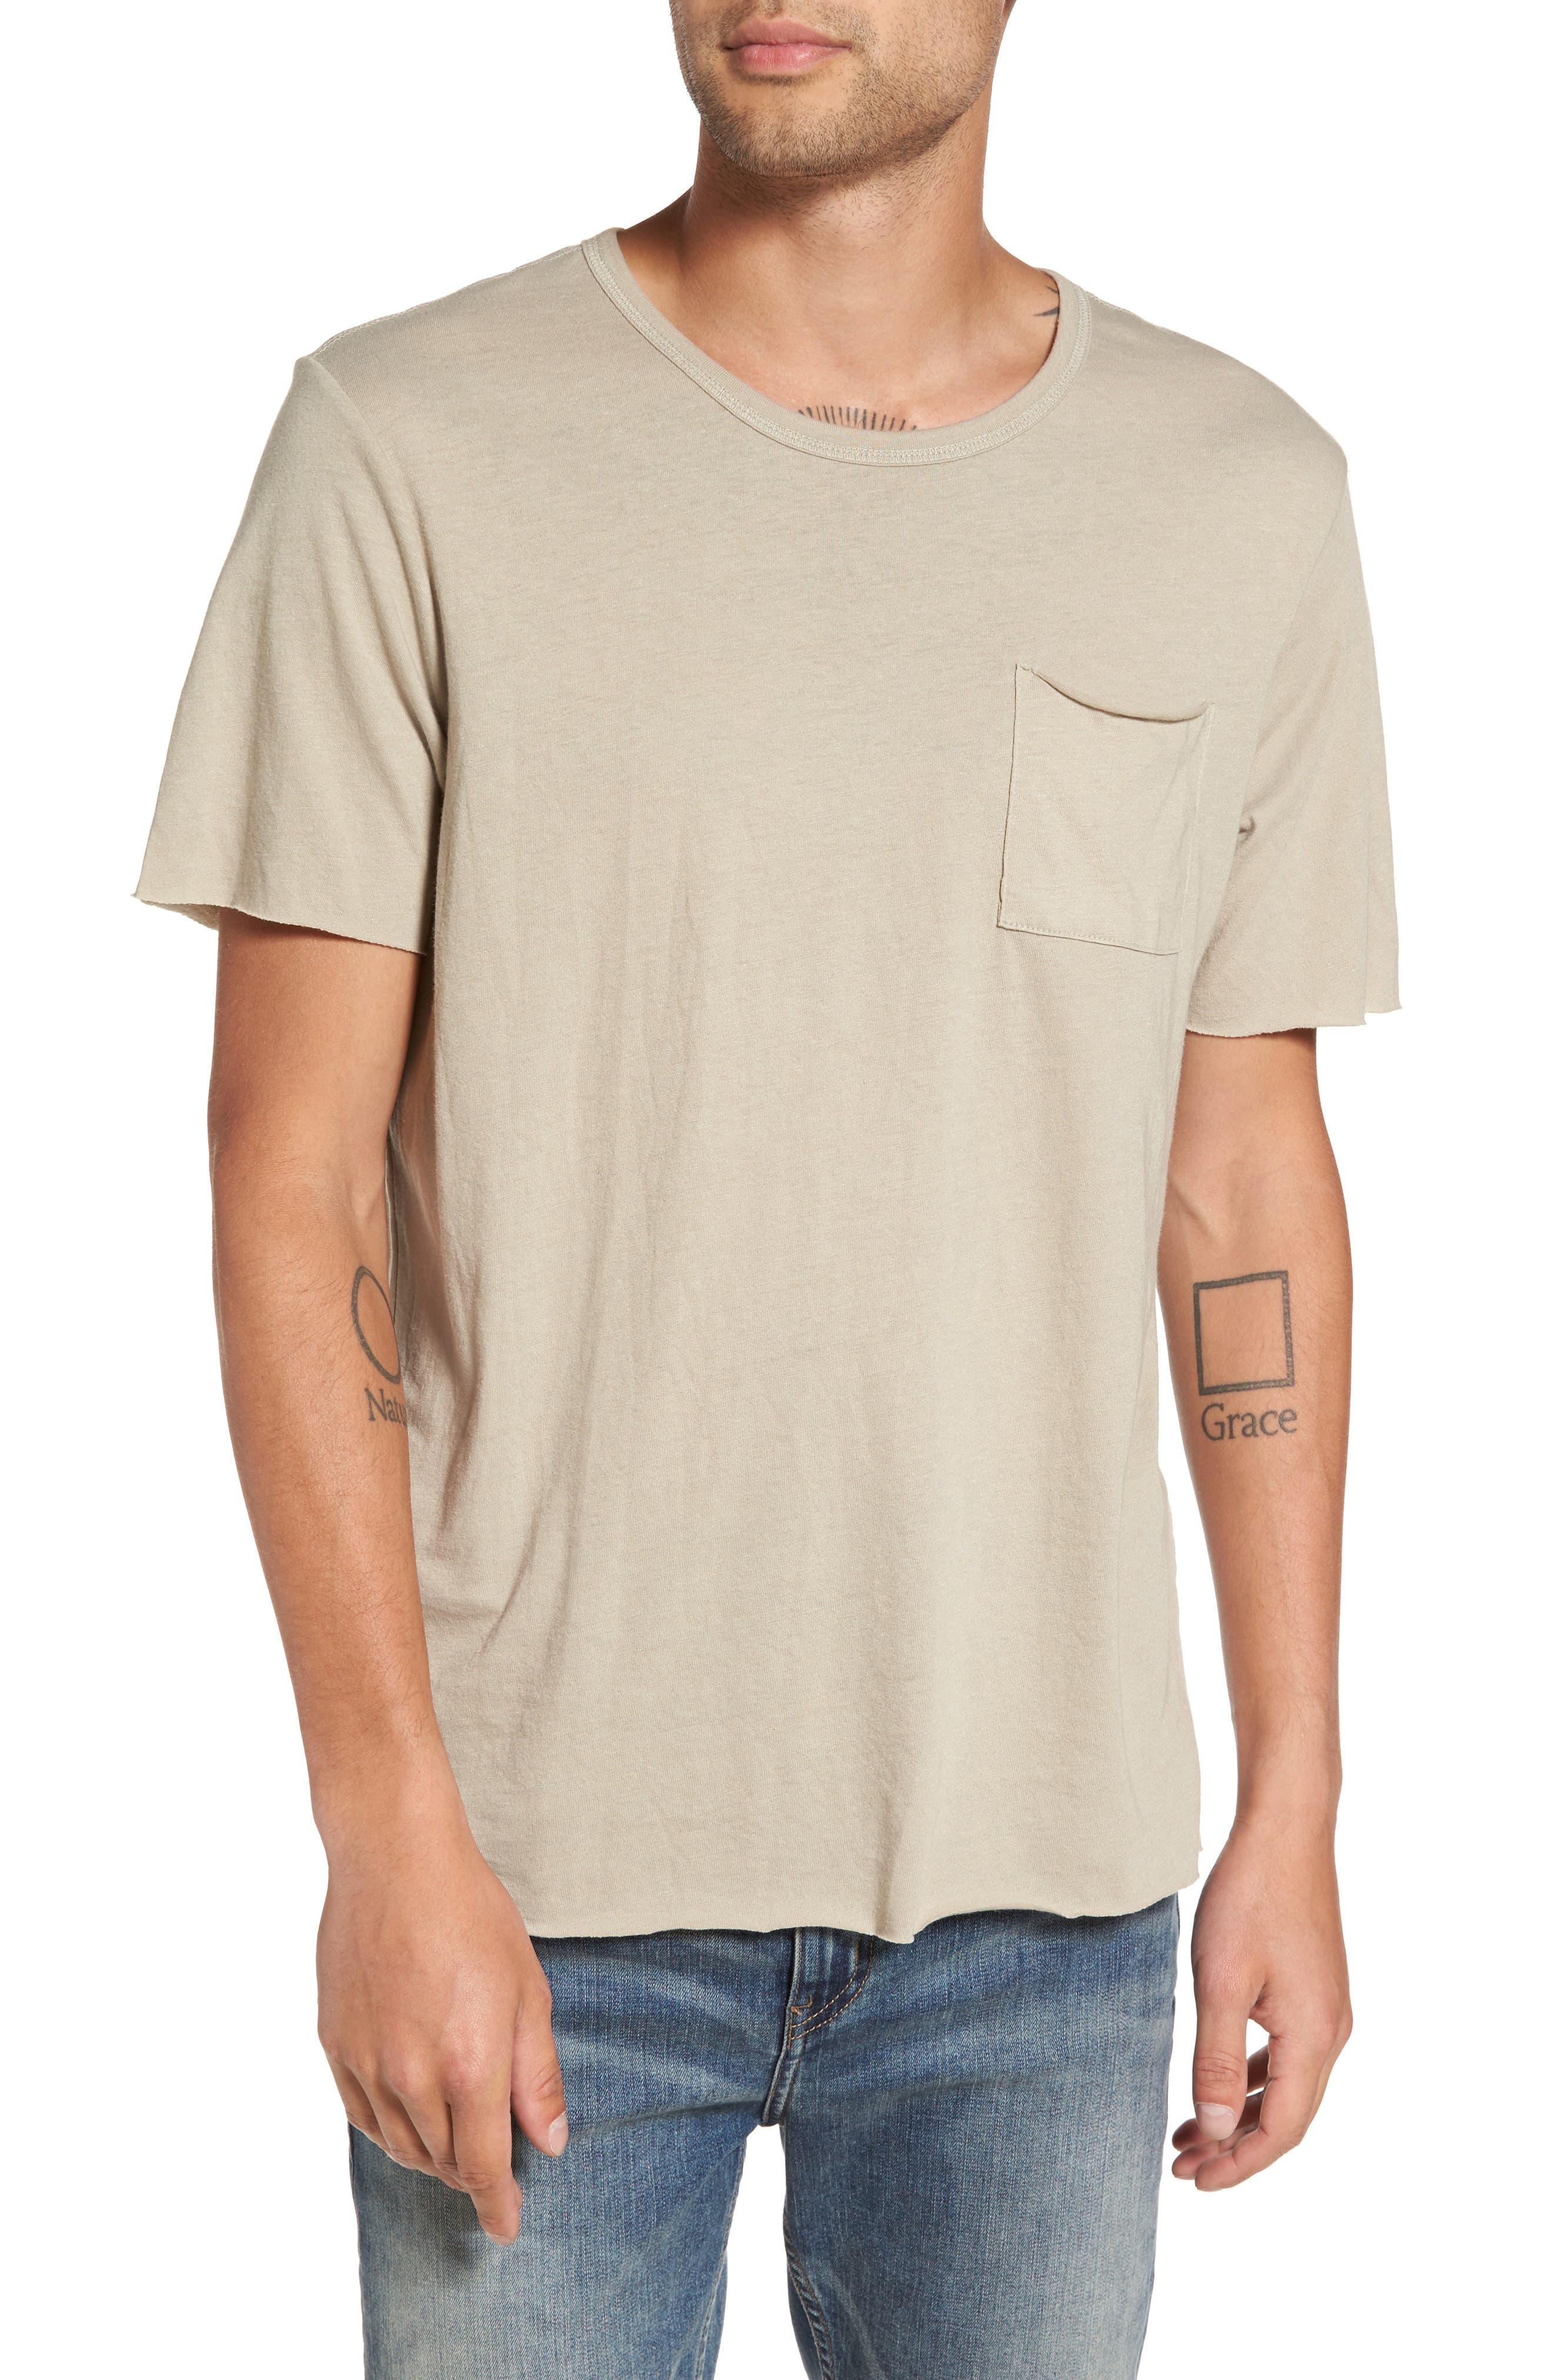 THE RAIL Scoop Neck Pocket T-Shirt